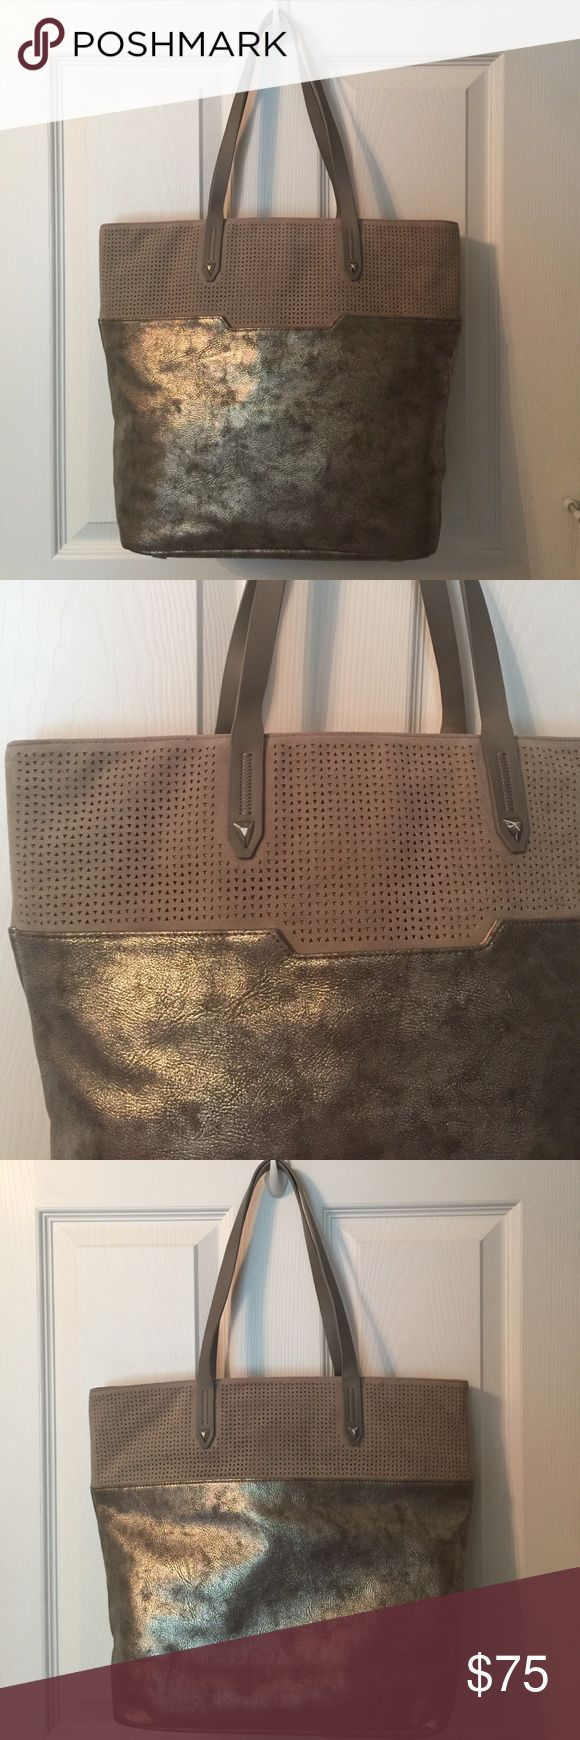 Stella & Dot Metallic Tote This gently used tote is great for everyday use and has multiple pockets inside along with an outside pocket. Mixed of surfed perf and distressed metallic vegan leather. Signs of wear (see last pic) Stella & Dot Bags Totes